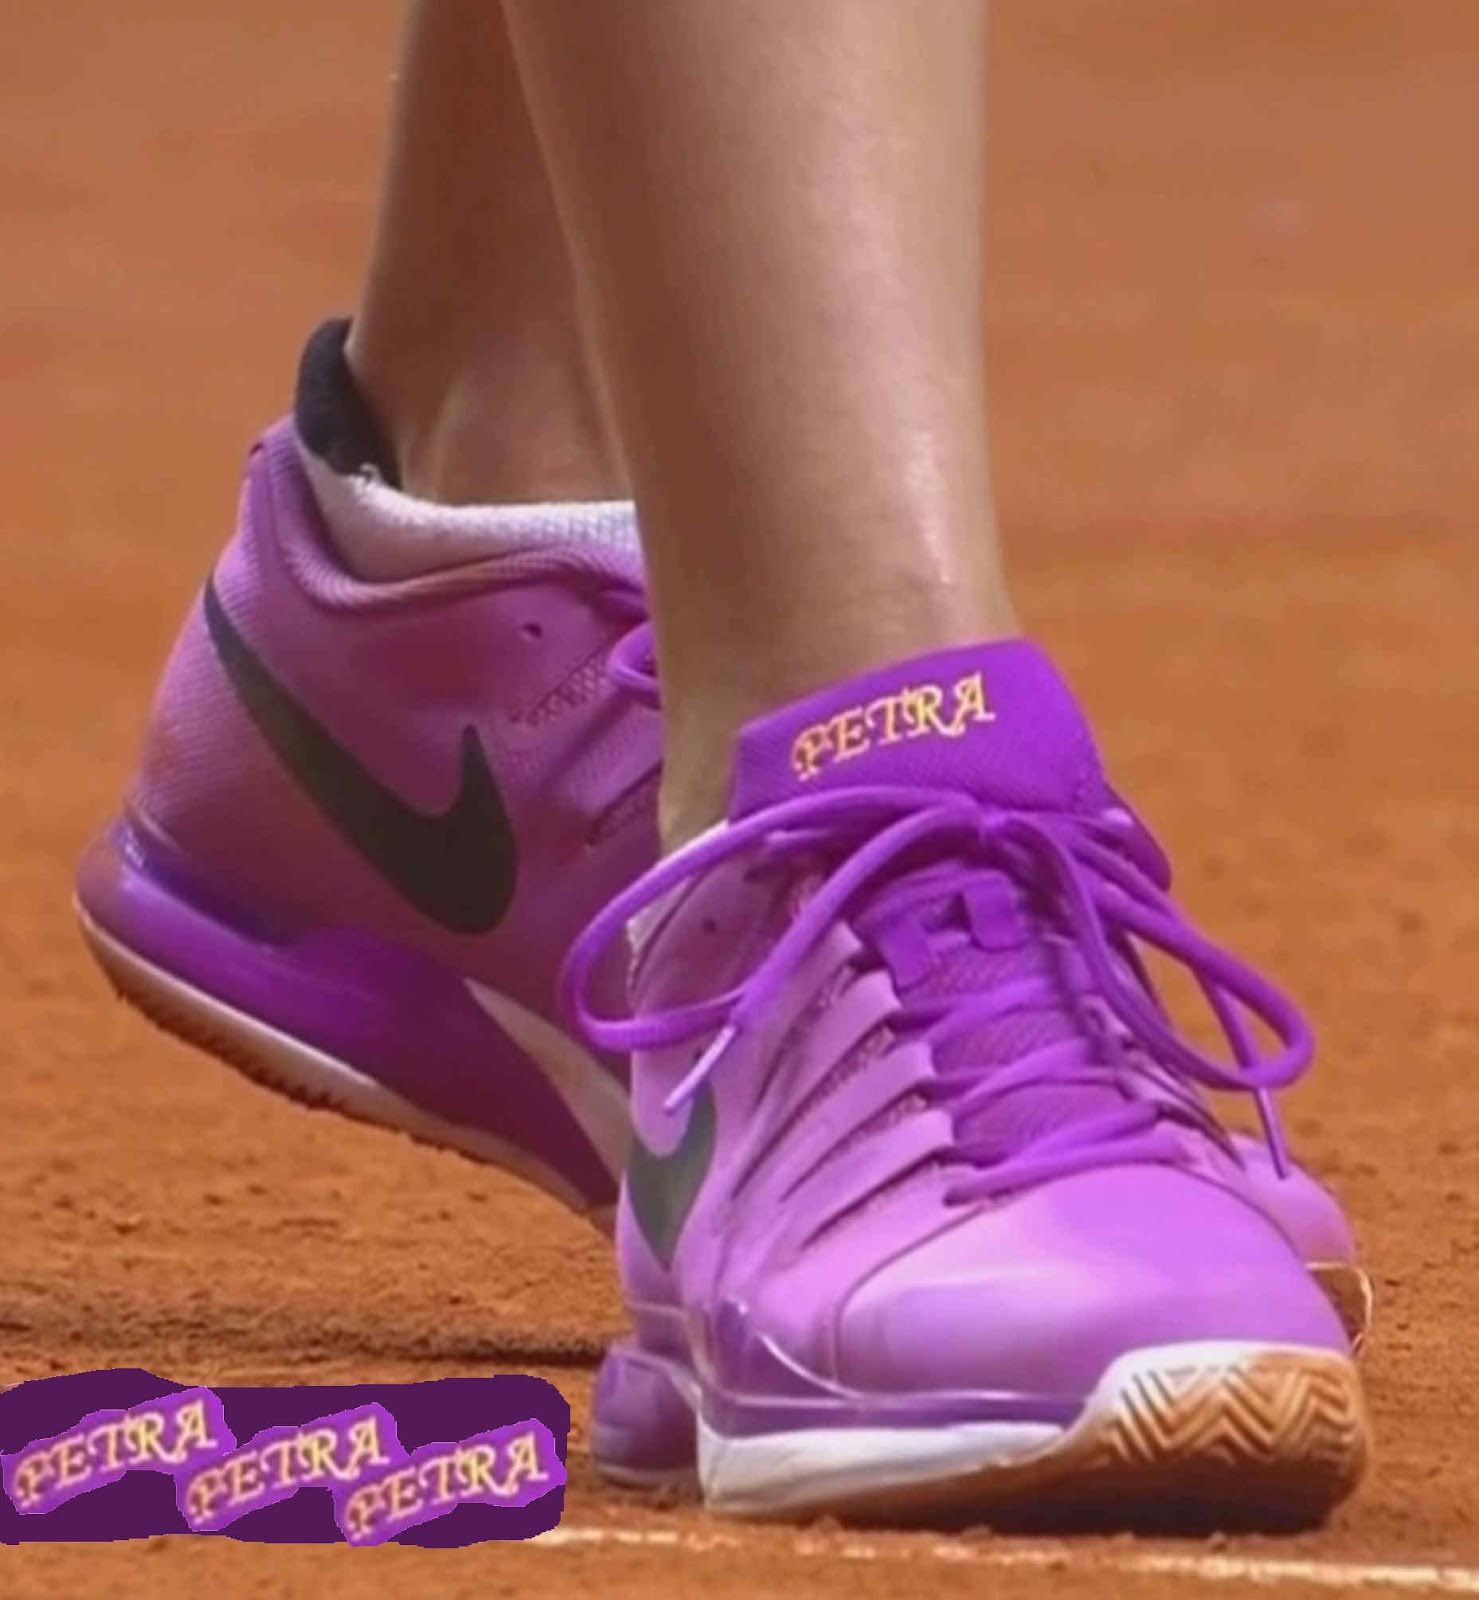 2b3d4ad9b67 It's All About the Shoe+: Kvitova's Nike Zoom Vapor 9.5 Tour